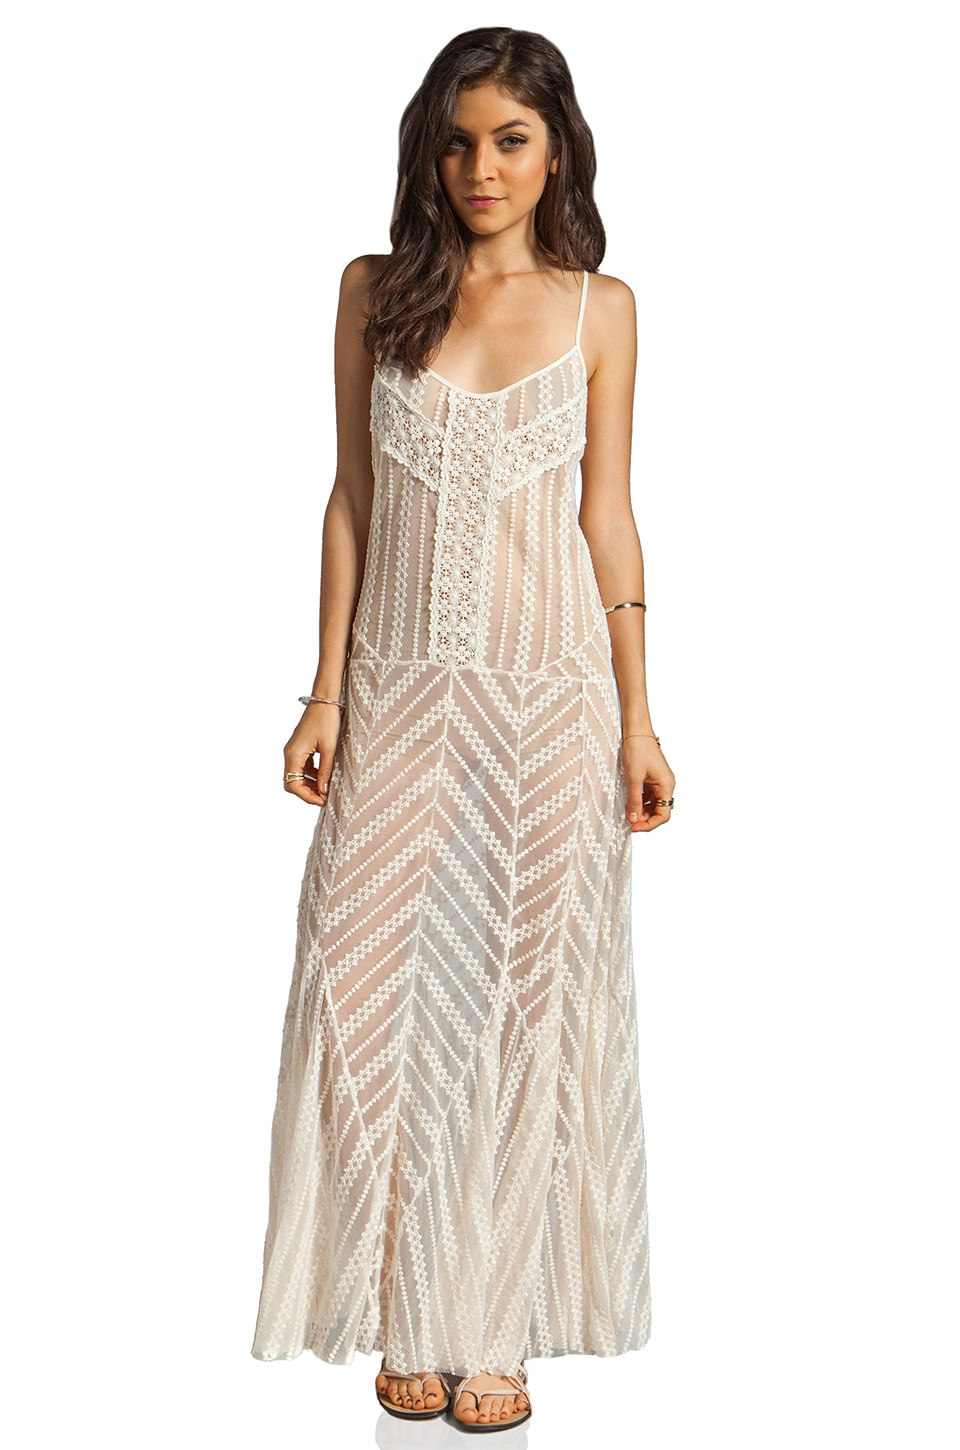 Free People Meadows of Lace Slip Maxi Dress in Cream Combo